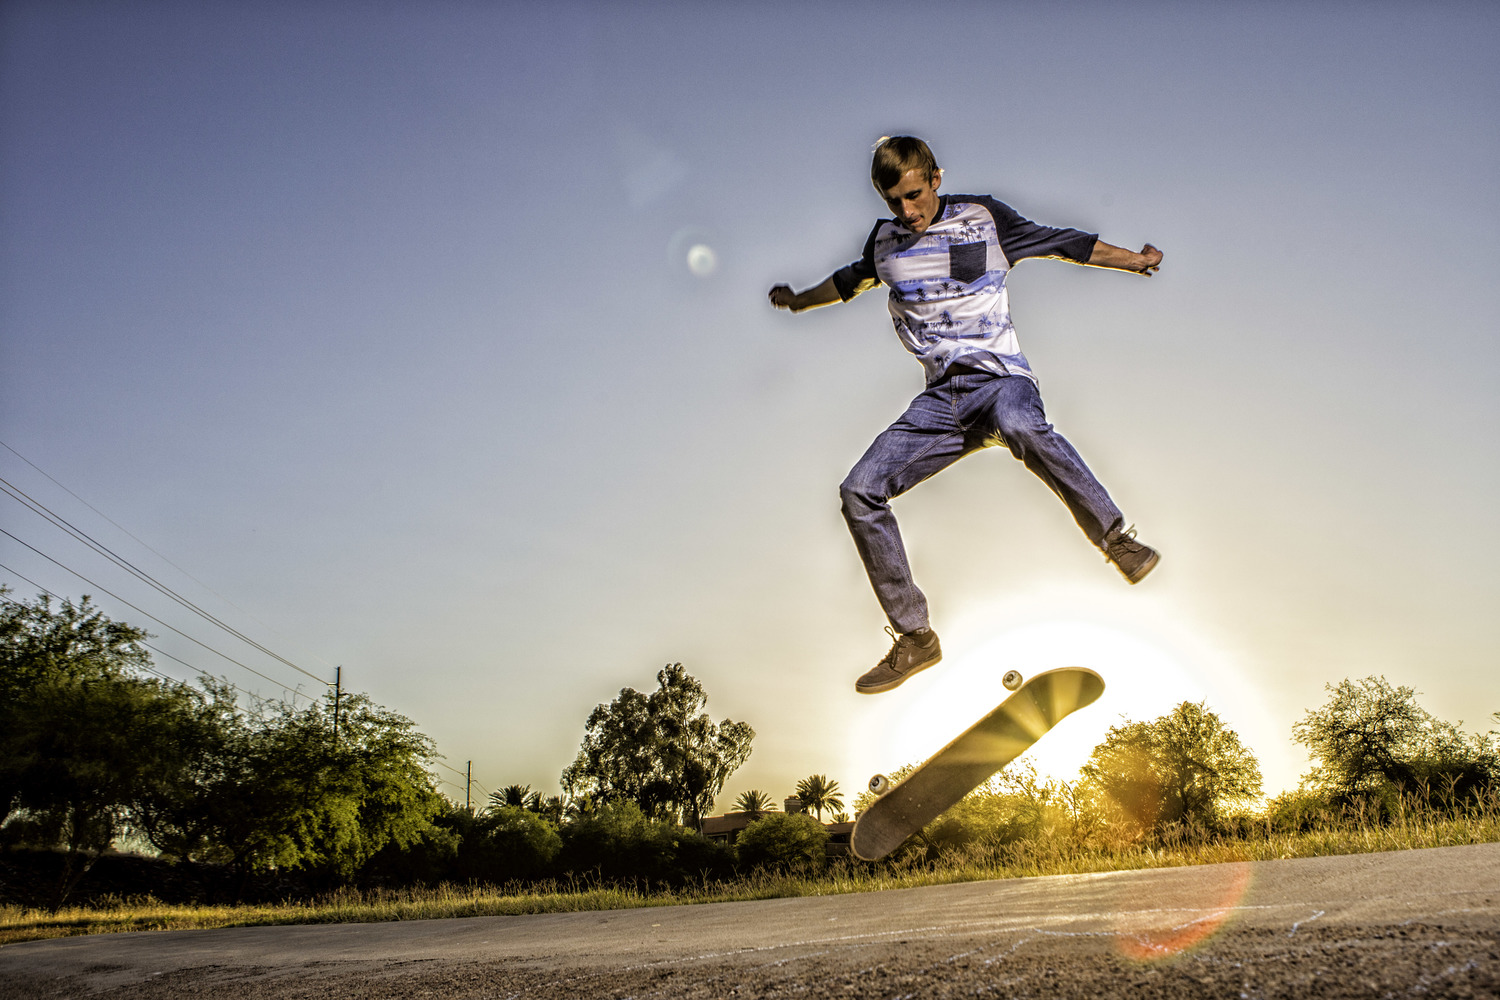 I like how the sun rays came through right behind the skate board. It's amazing how bringing a prop cancompletely change the personality of the person and energy of the session. Deven was so pumped for this imageand couldn't wait to show them to his skater buddies.